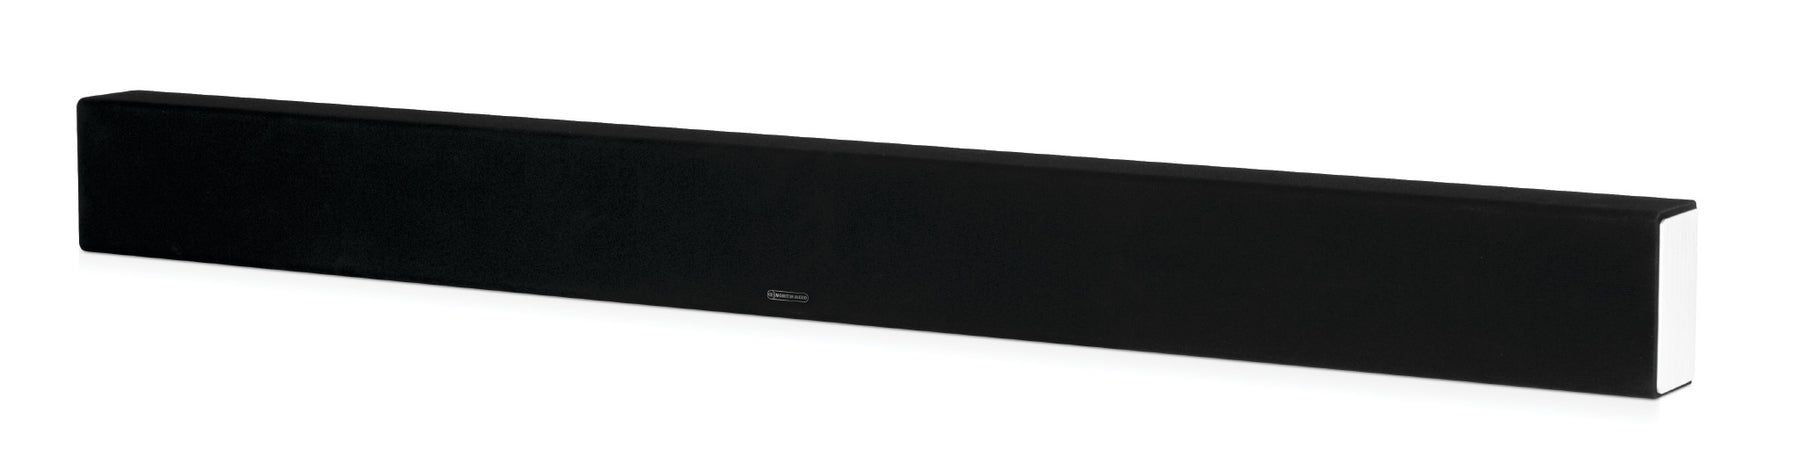 Monitor Audio SB-4 Passive Soundbar - Safe and Sound HQ